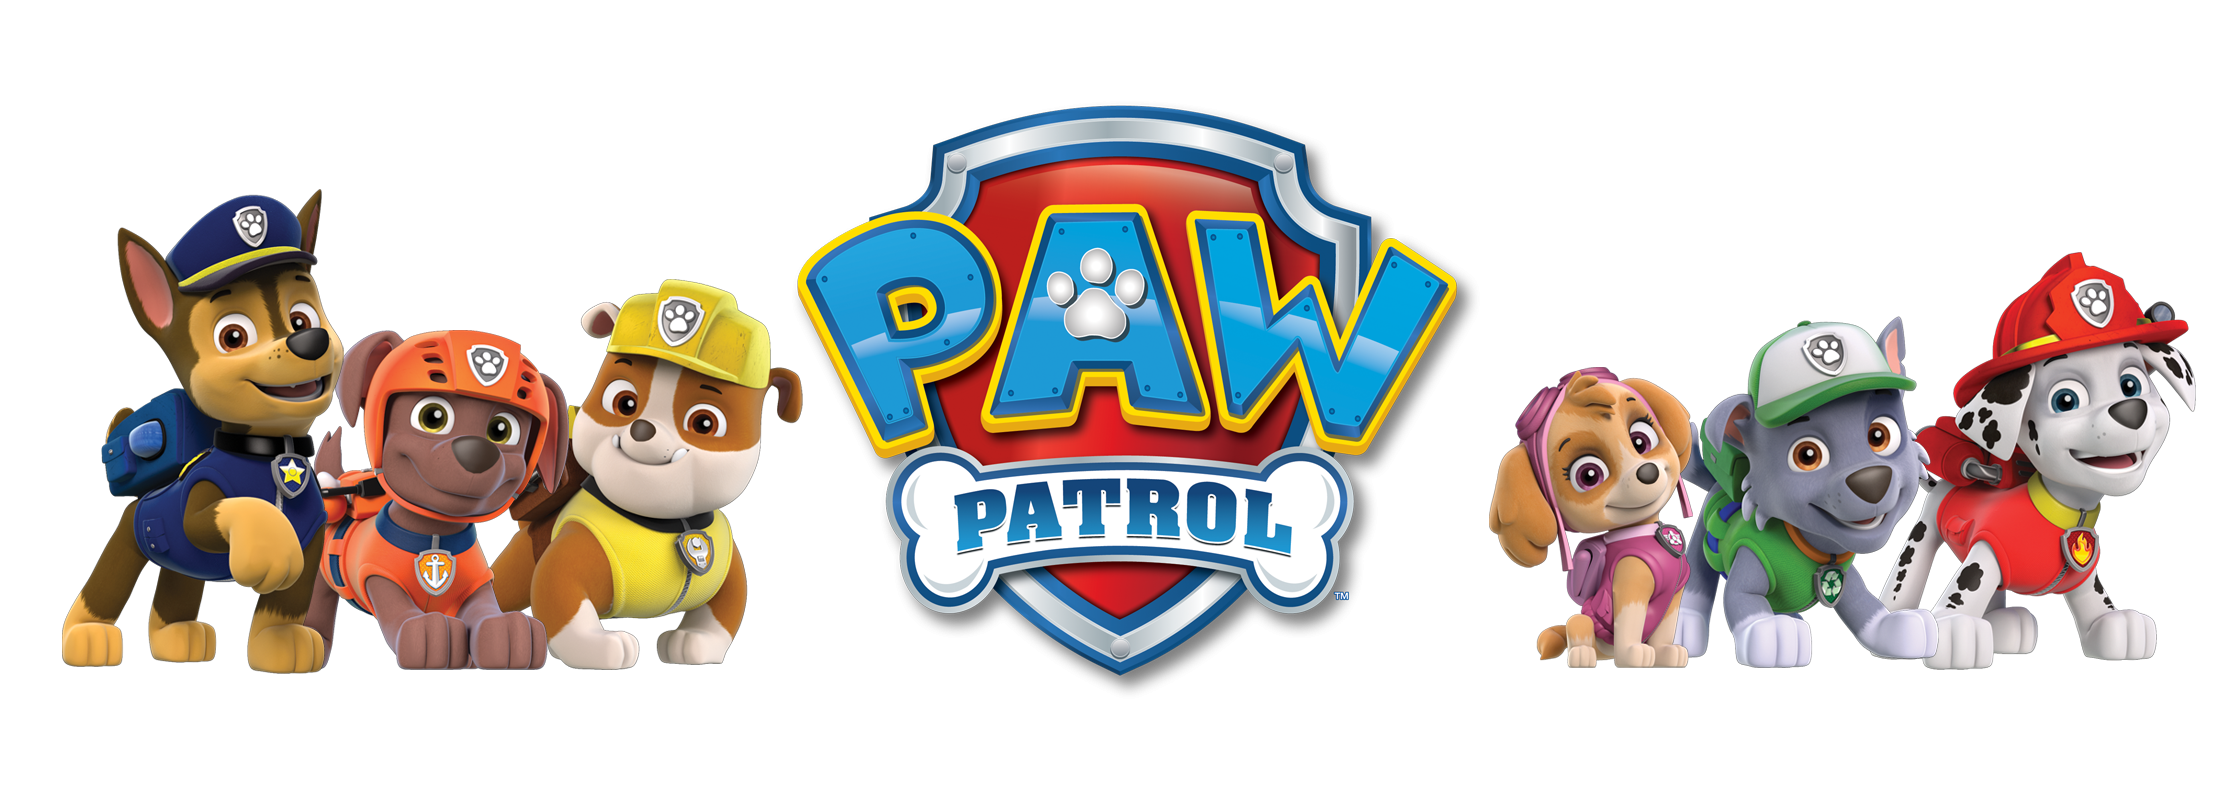 Paw patrol background png. Transparent pictures free icons